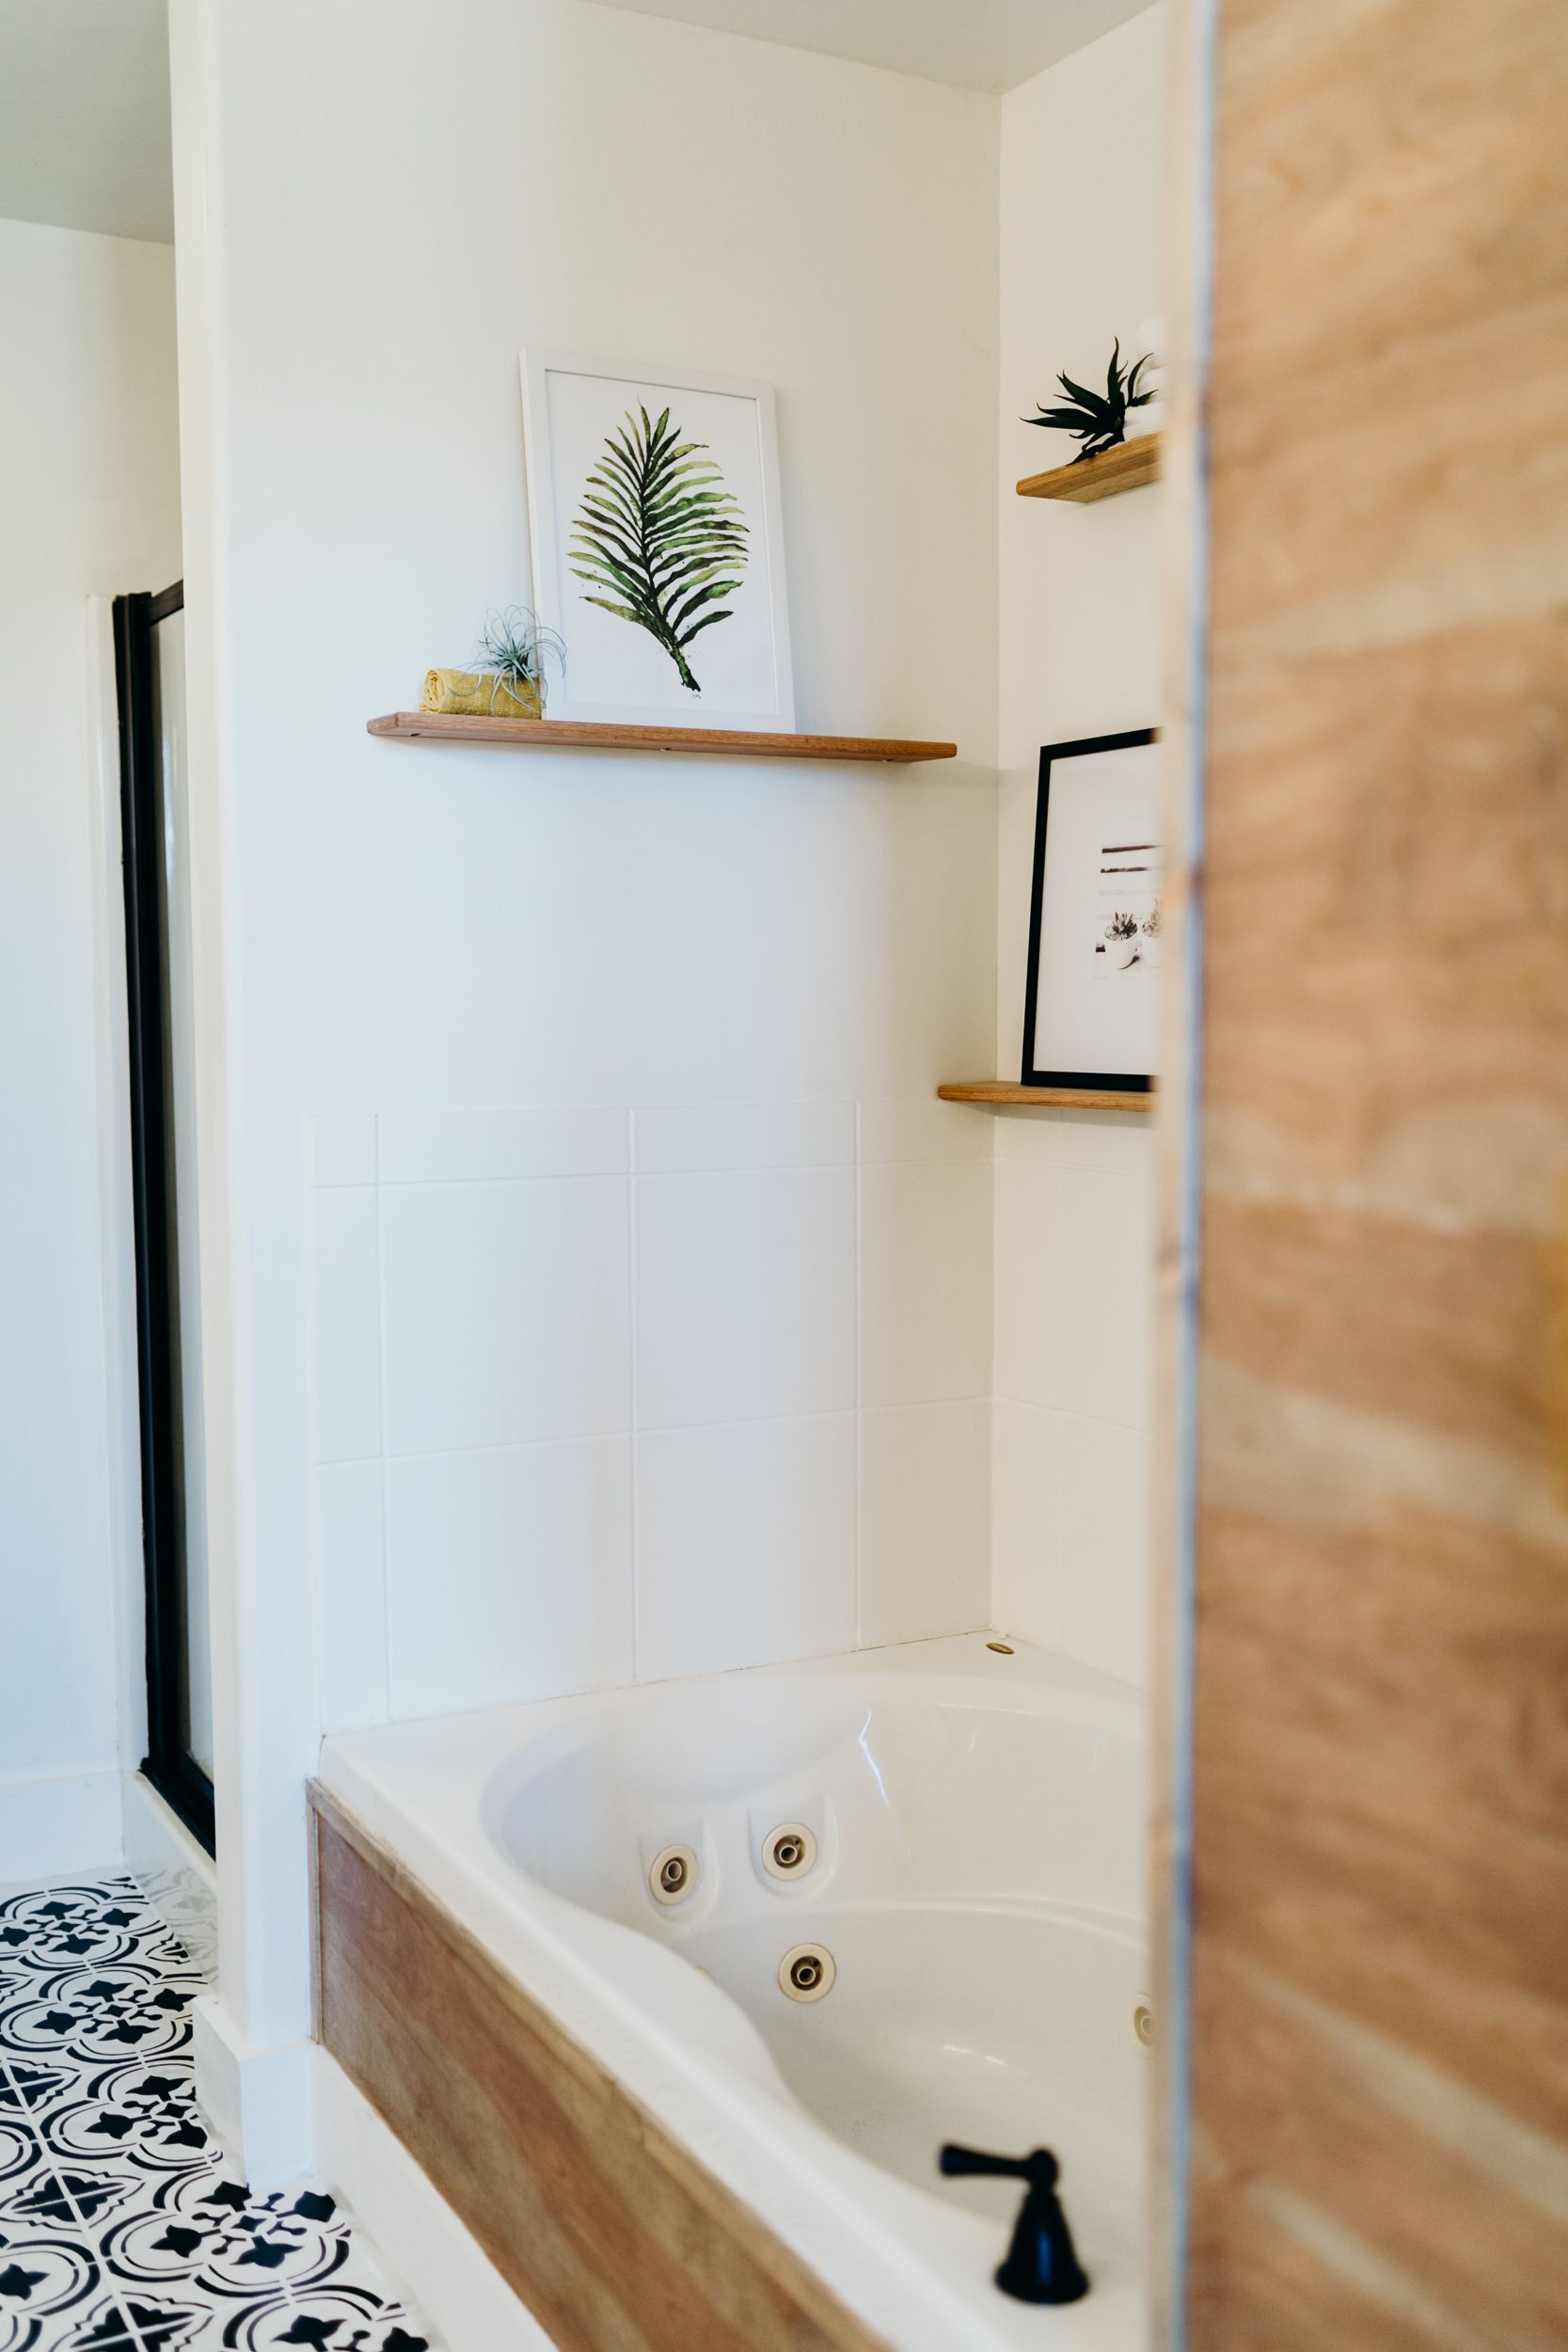 Airbnb | Pinterest | Master suite bathroom, Jacuzzi tub and Jacuzzi